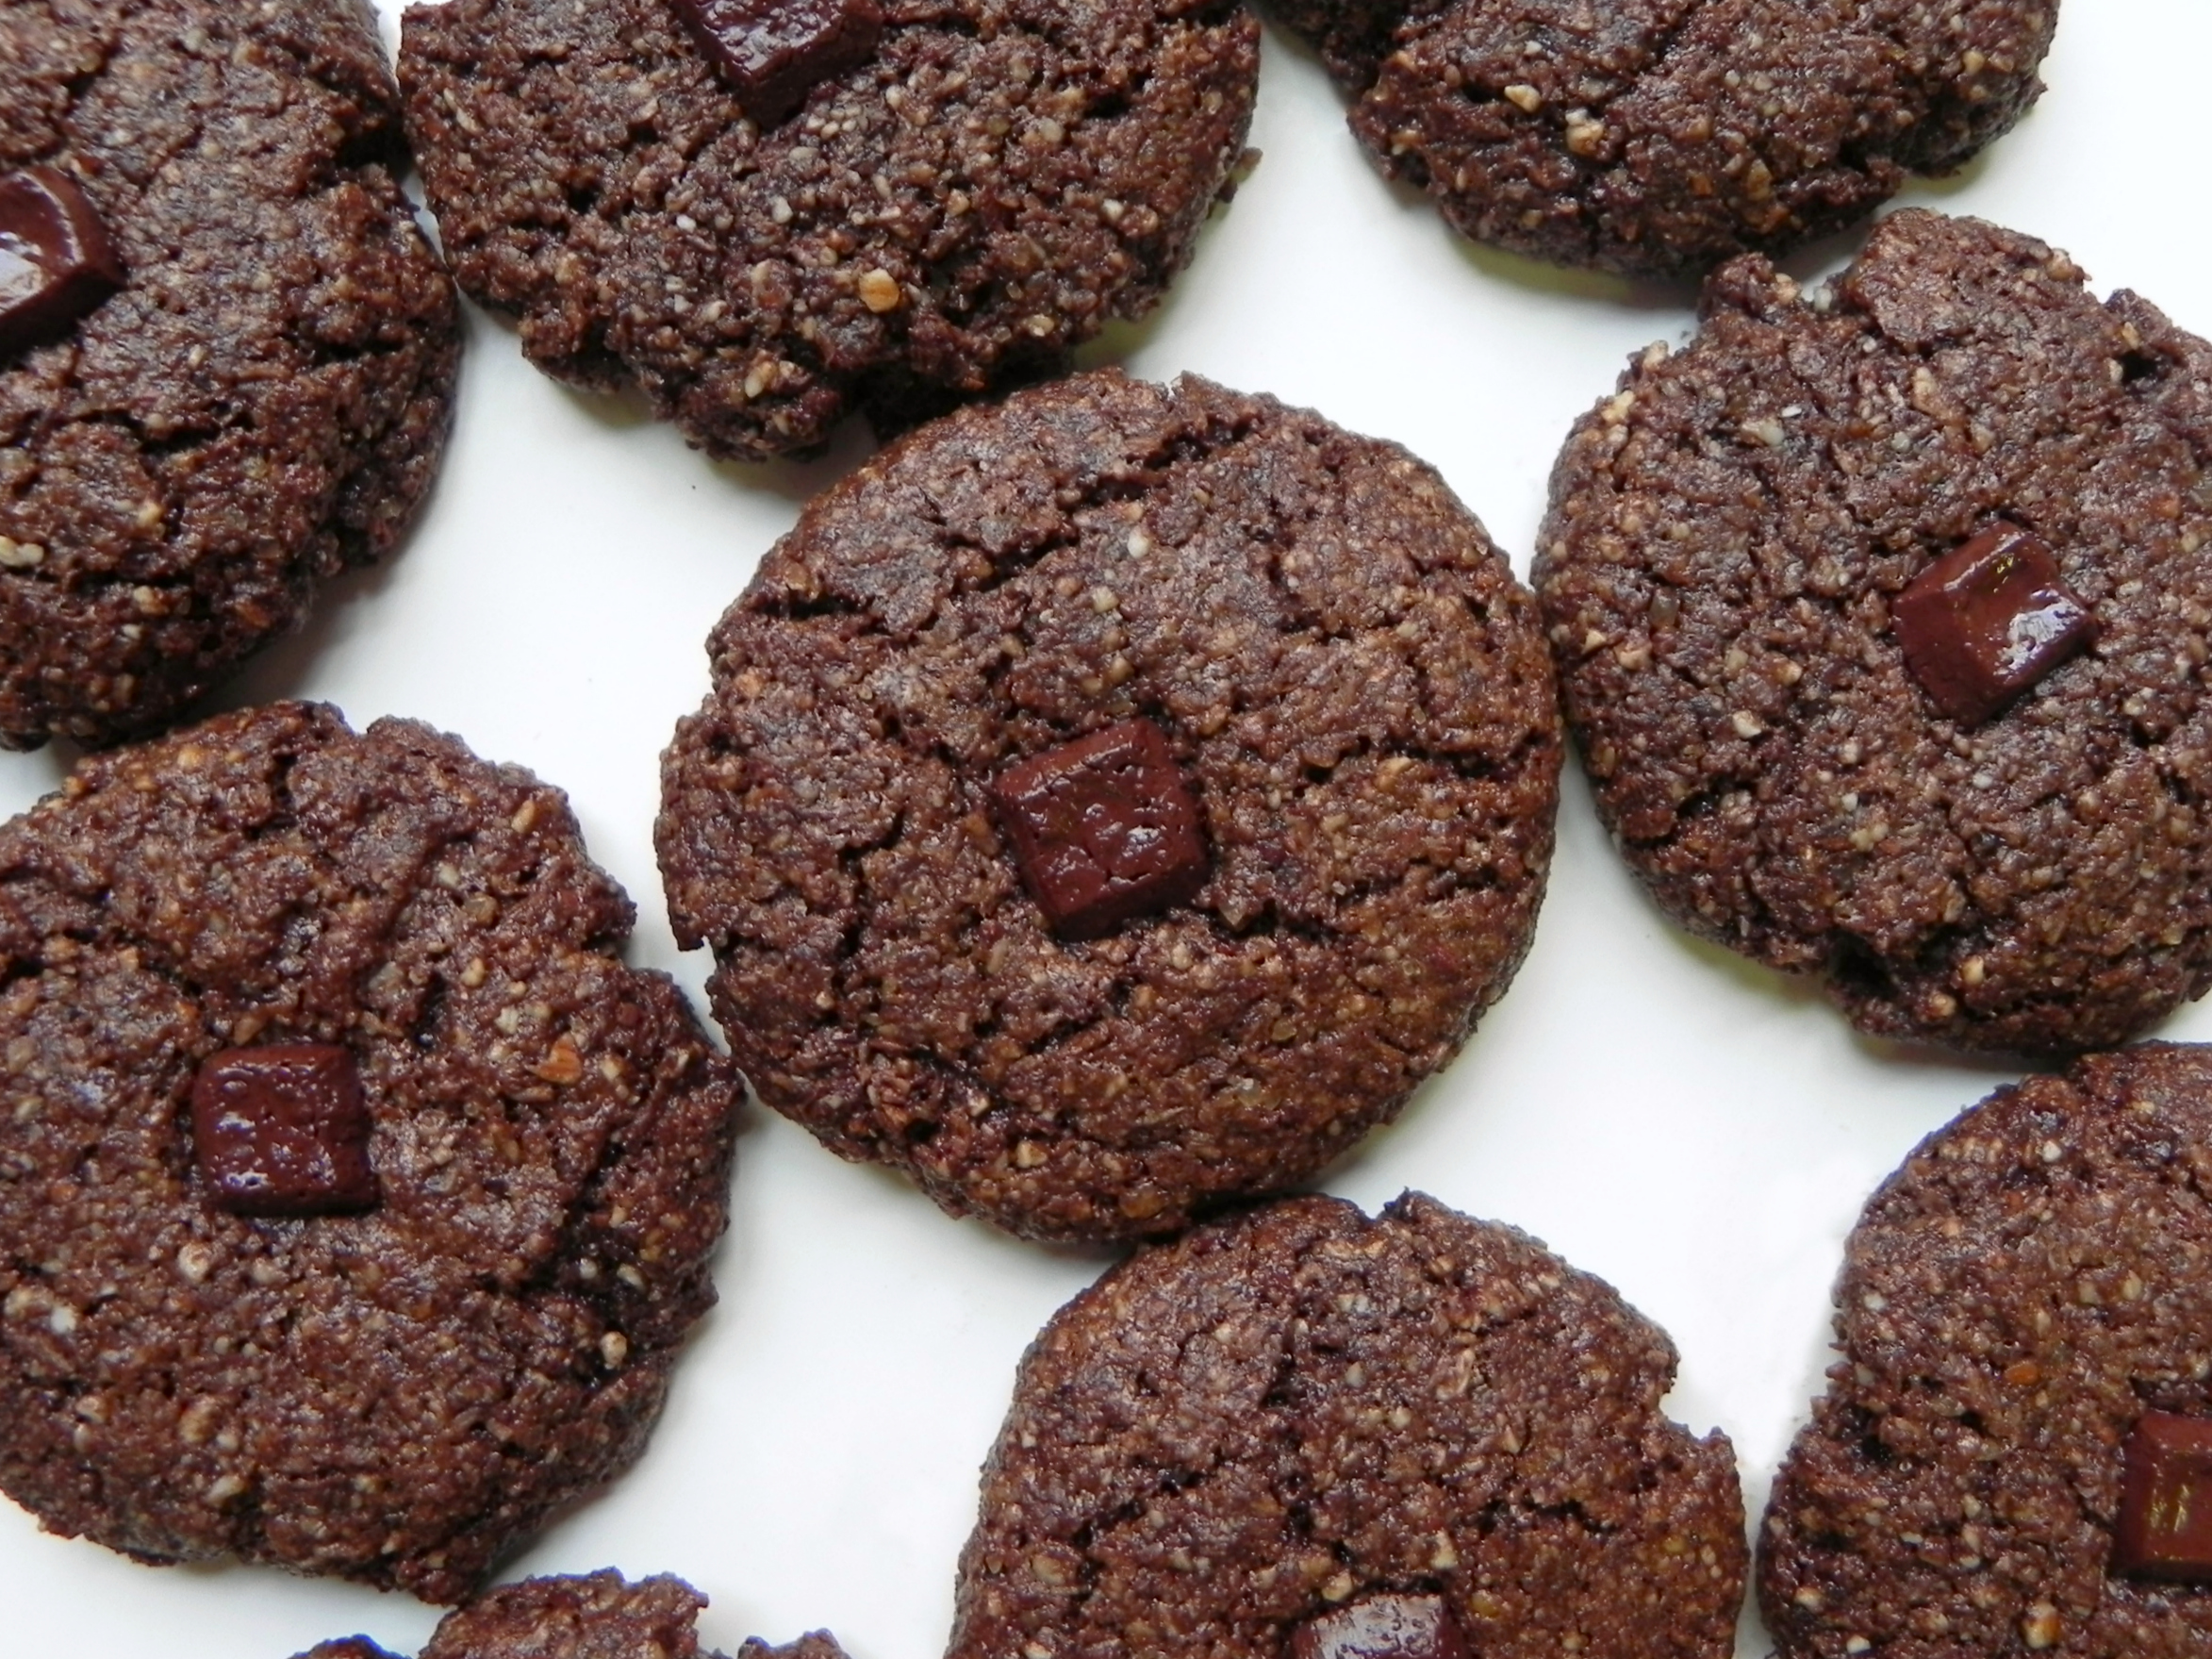 Grain Free Double Chocolate Cookies (Vegan + Paleo)